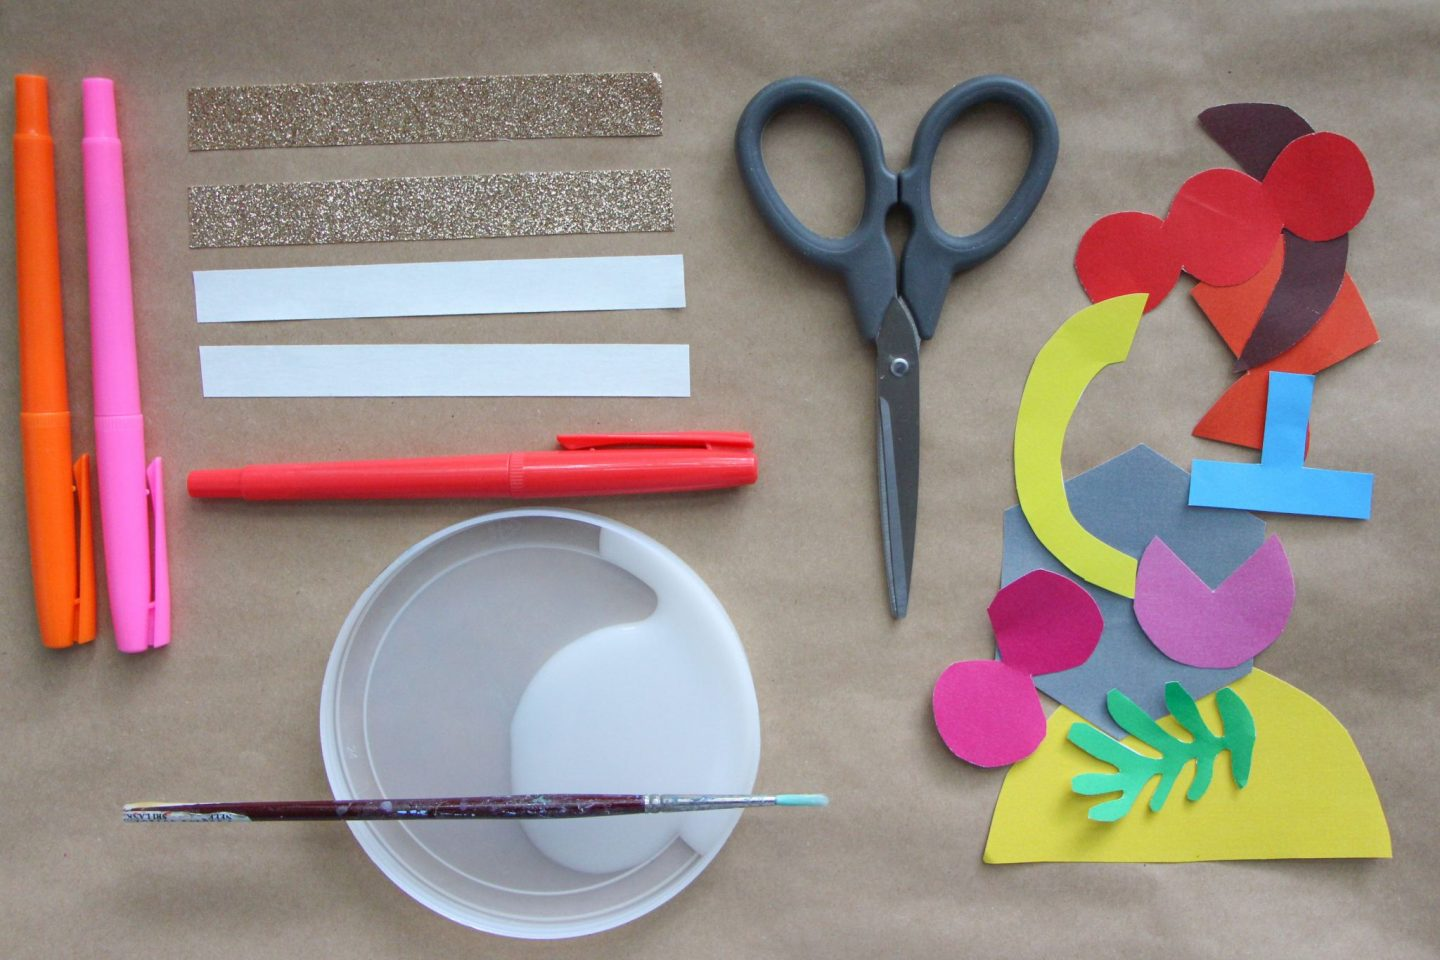 Tools and materials for cutting and pasting with the Play Shapes